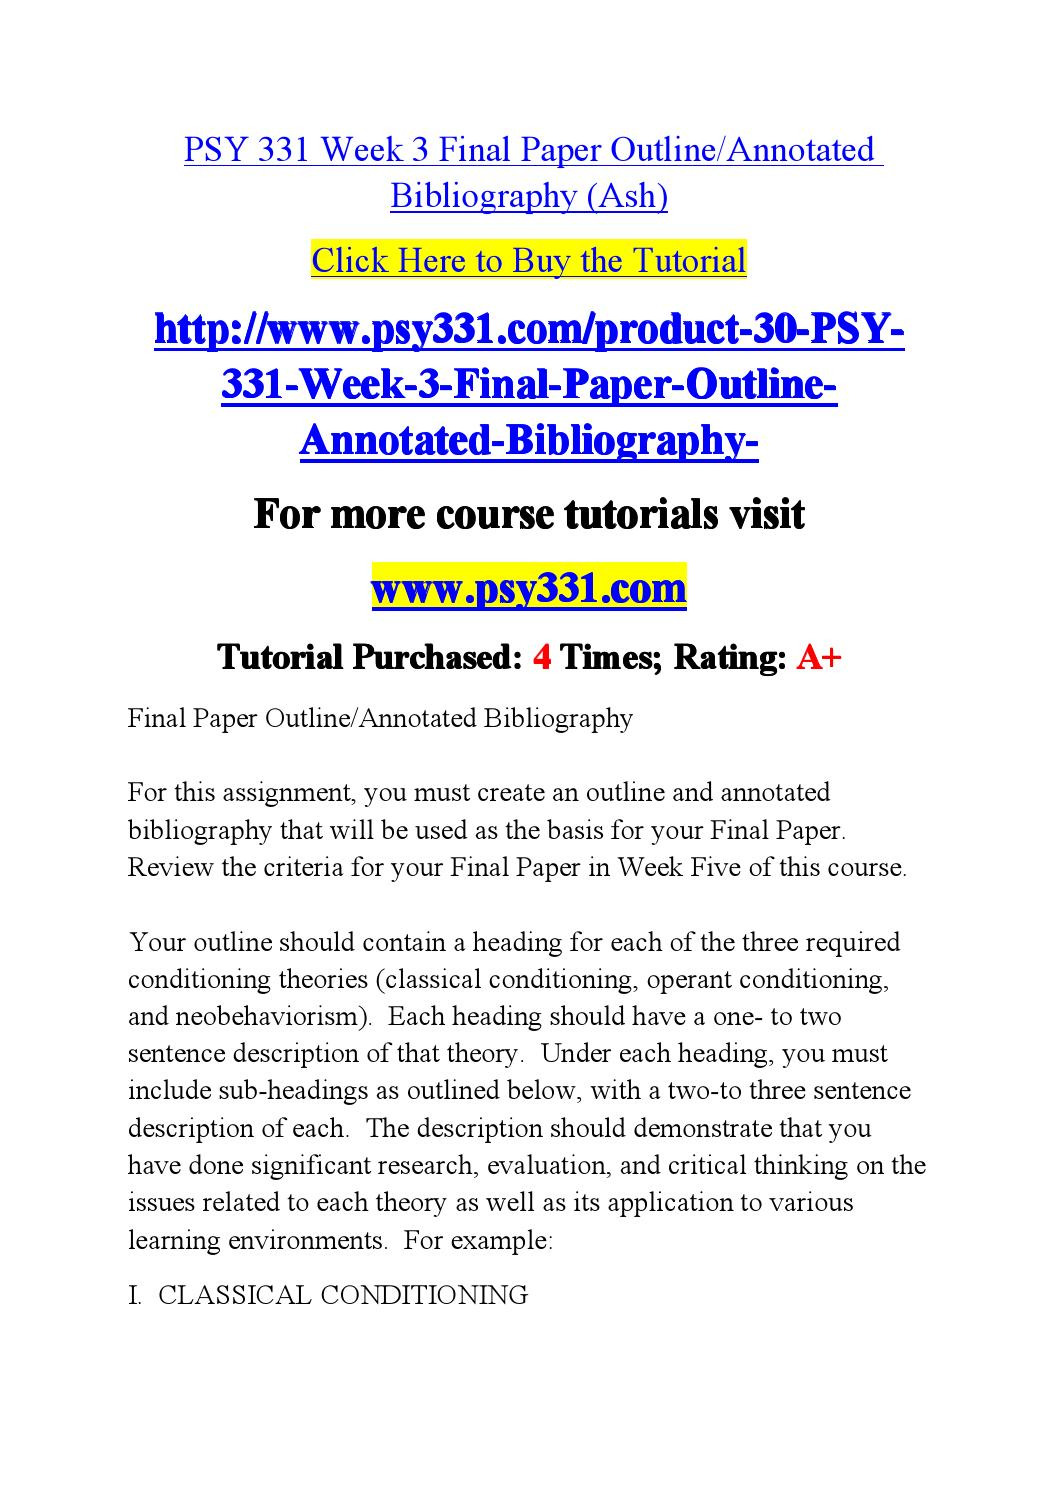 annotated outline and annotated bibliography angel (1) prepare an annotated outline and bibliography of at least 7 to 10 references begin with a basic outline and add detail describing what will occur in each section of the paper (2) for major headings, you should include several descriptive sentences or a short descriptive paragraph.